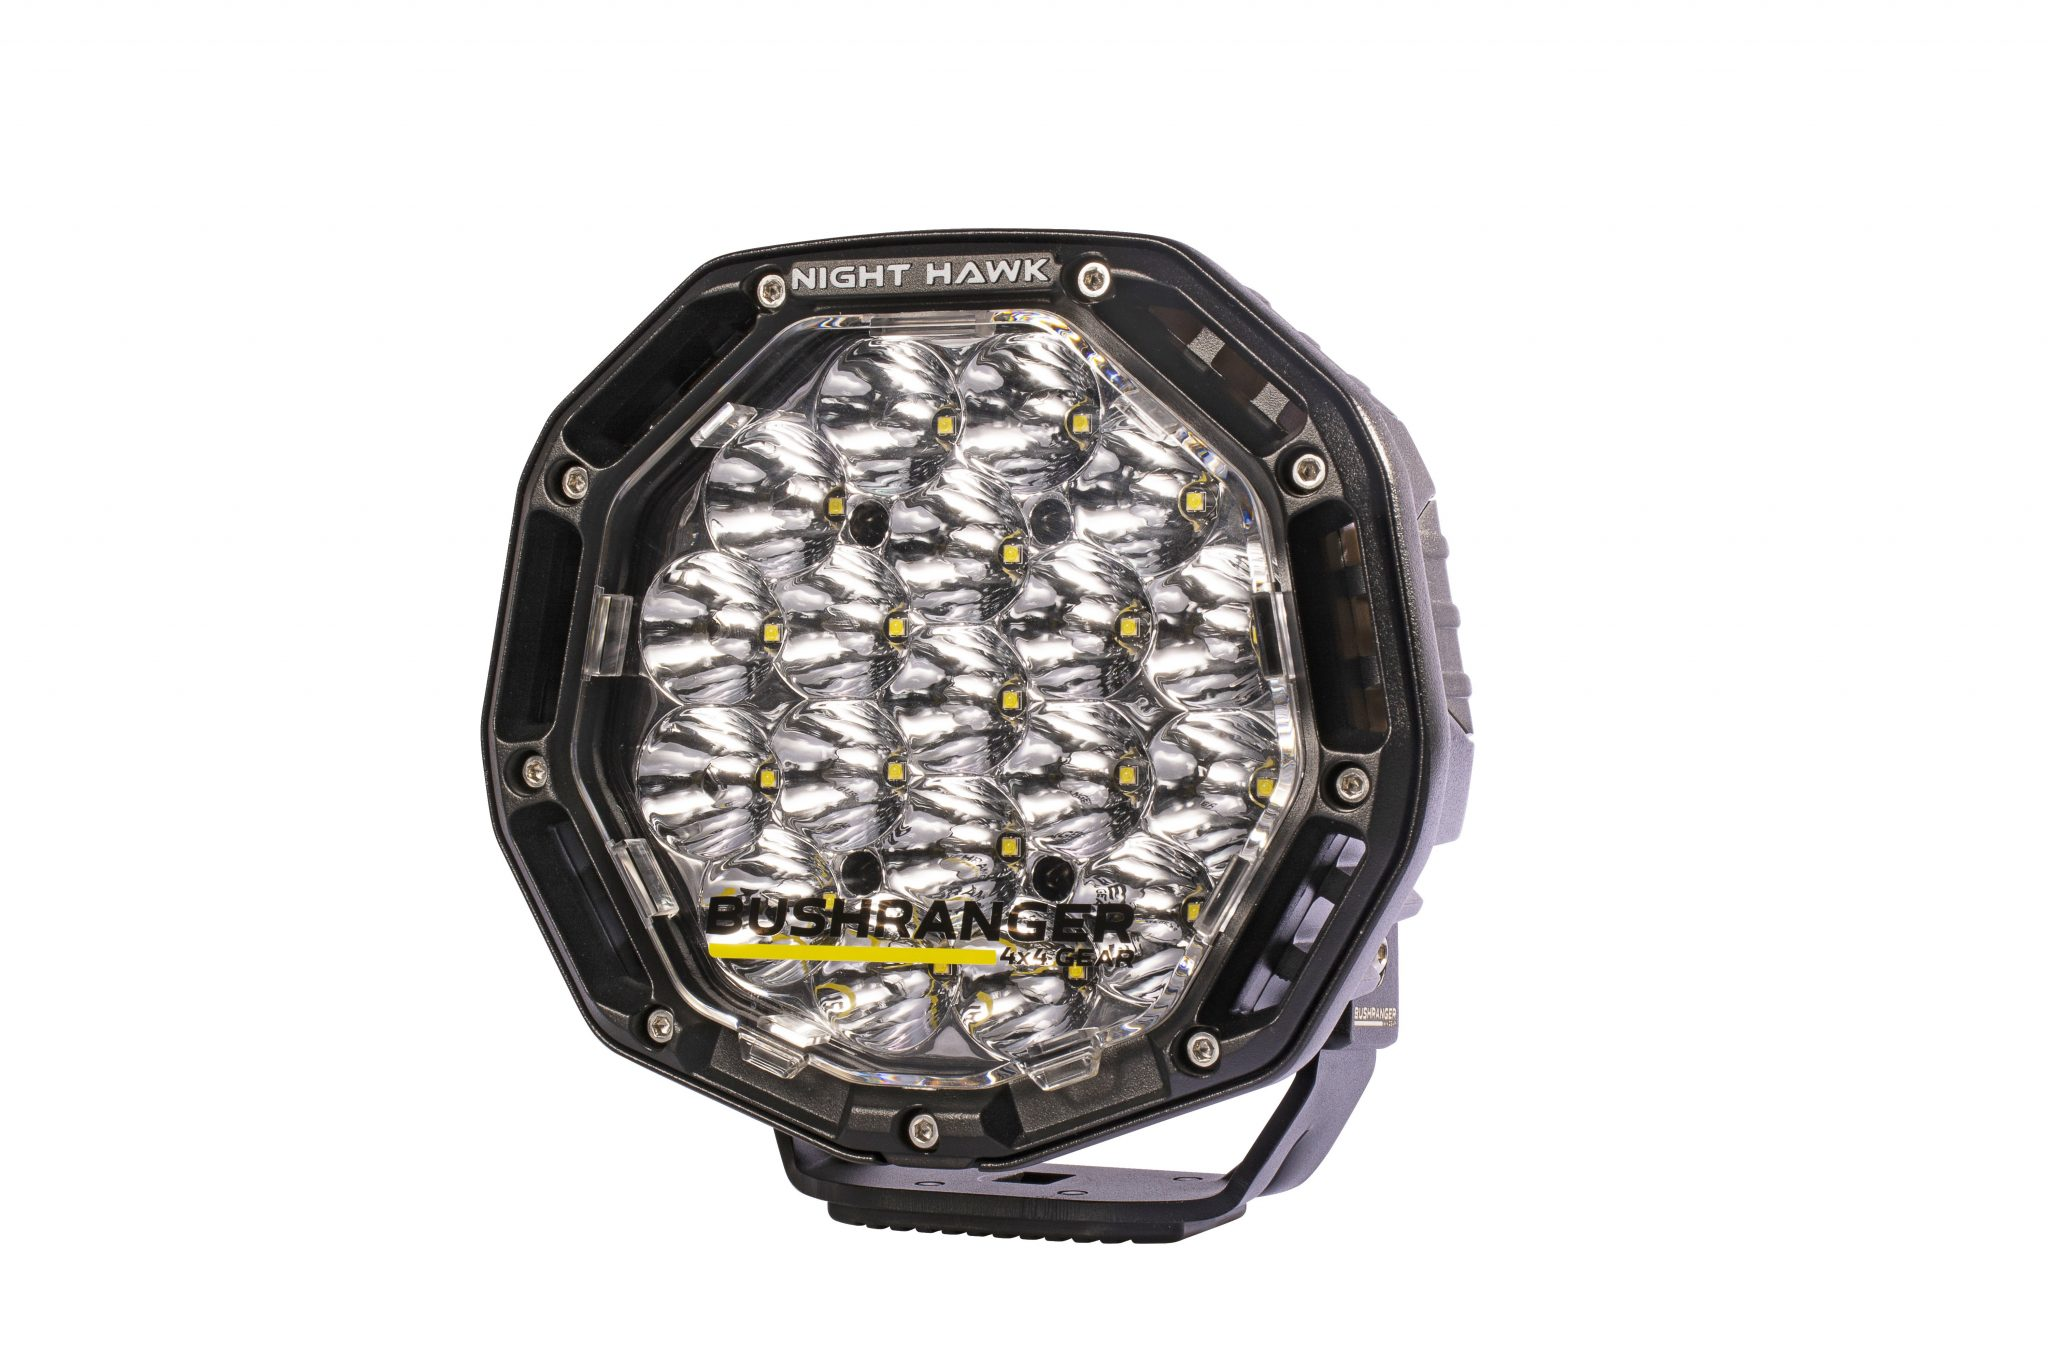 New release: Bushranger Night Hawk 7-inch VLI LED driving lights